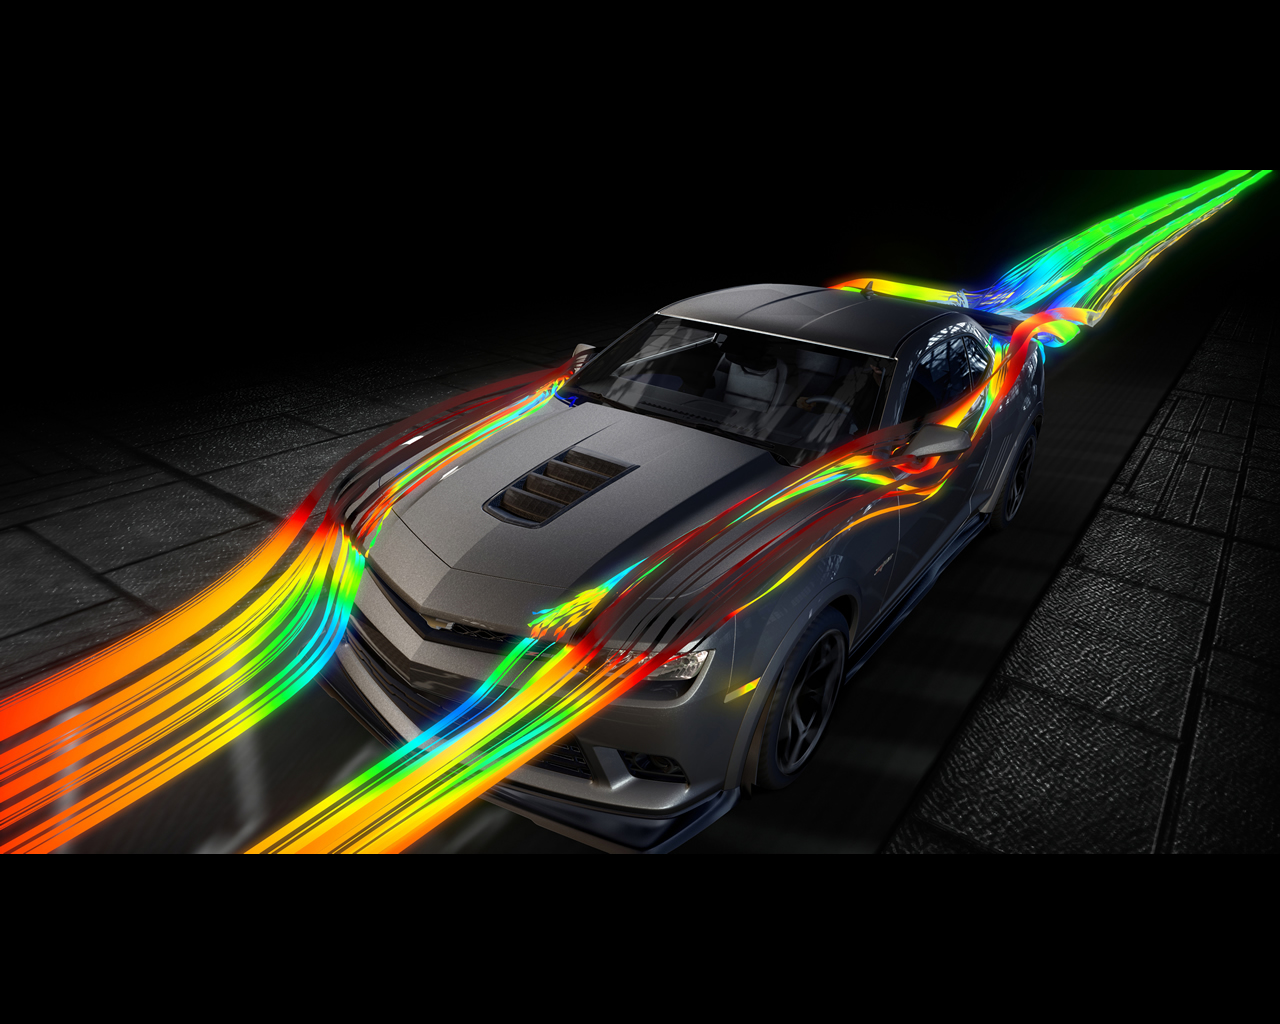 wallpapers of the chevrolet camaro z28 2014 click on image to enlarge - 2014 Camaro Wallpaper